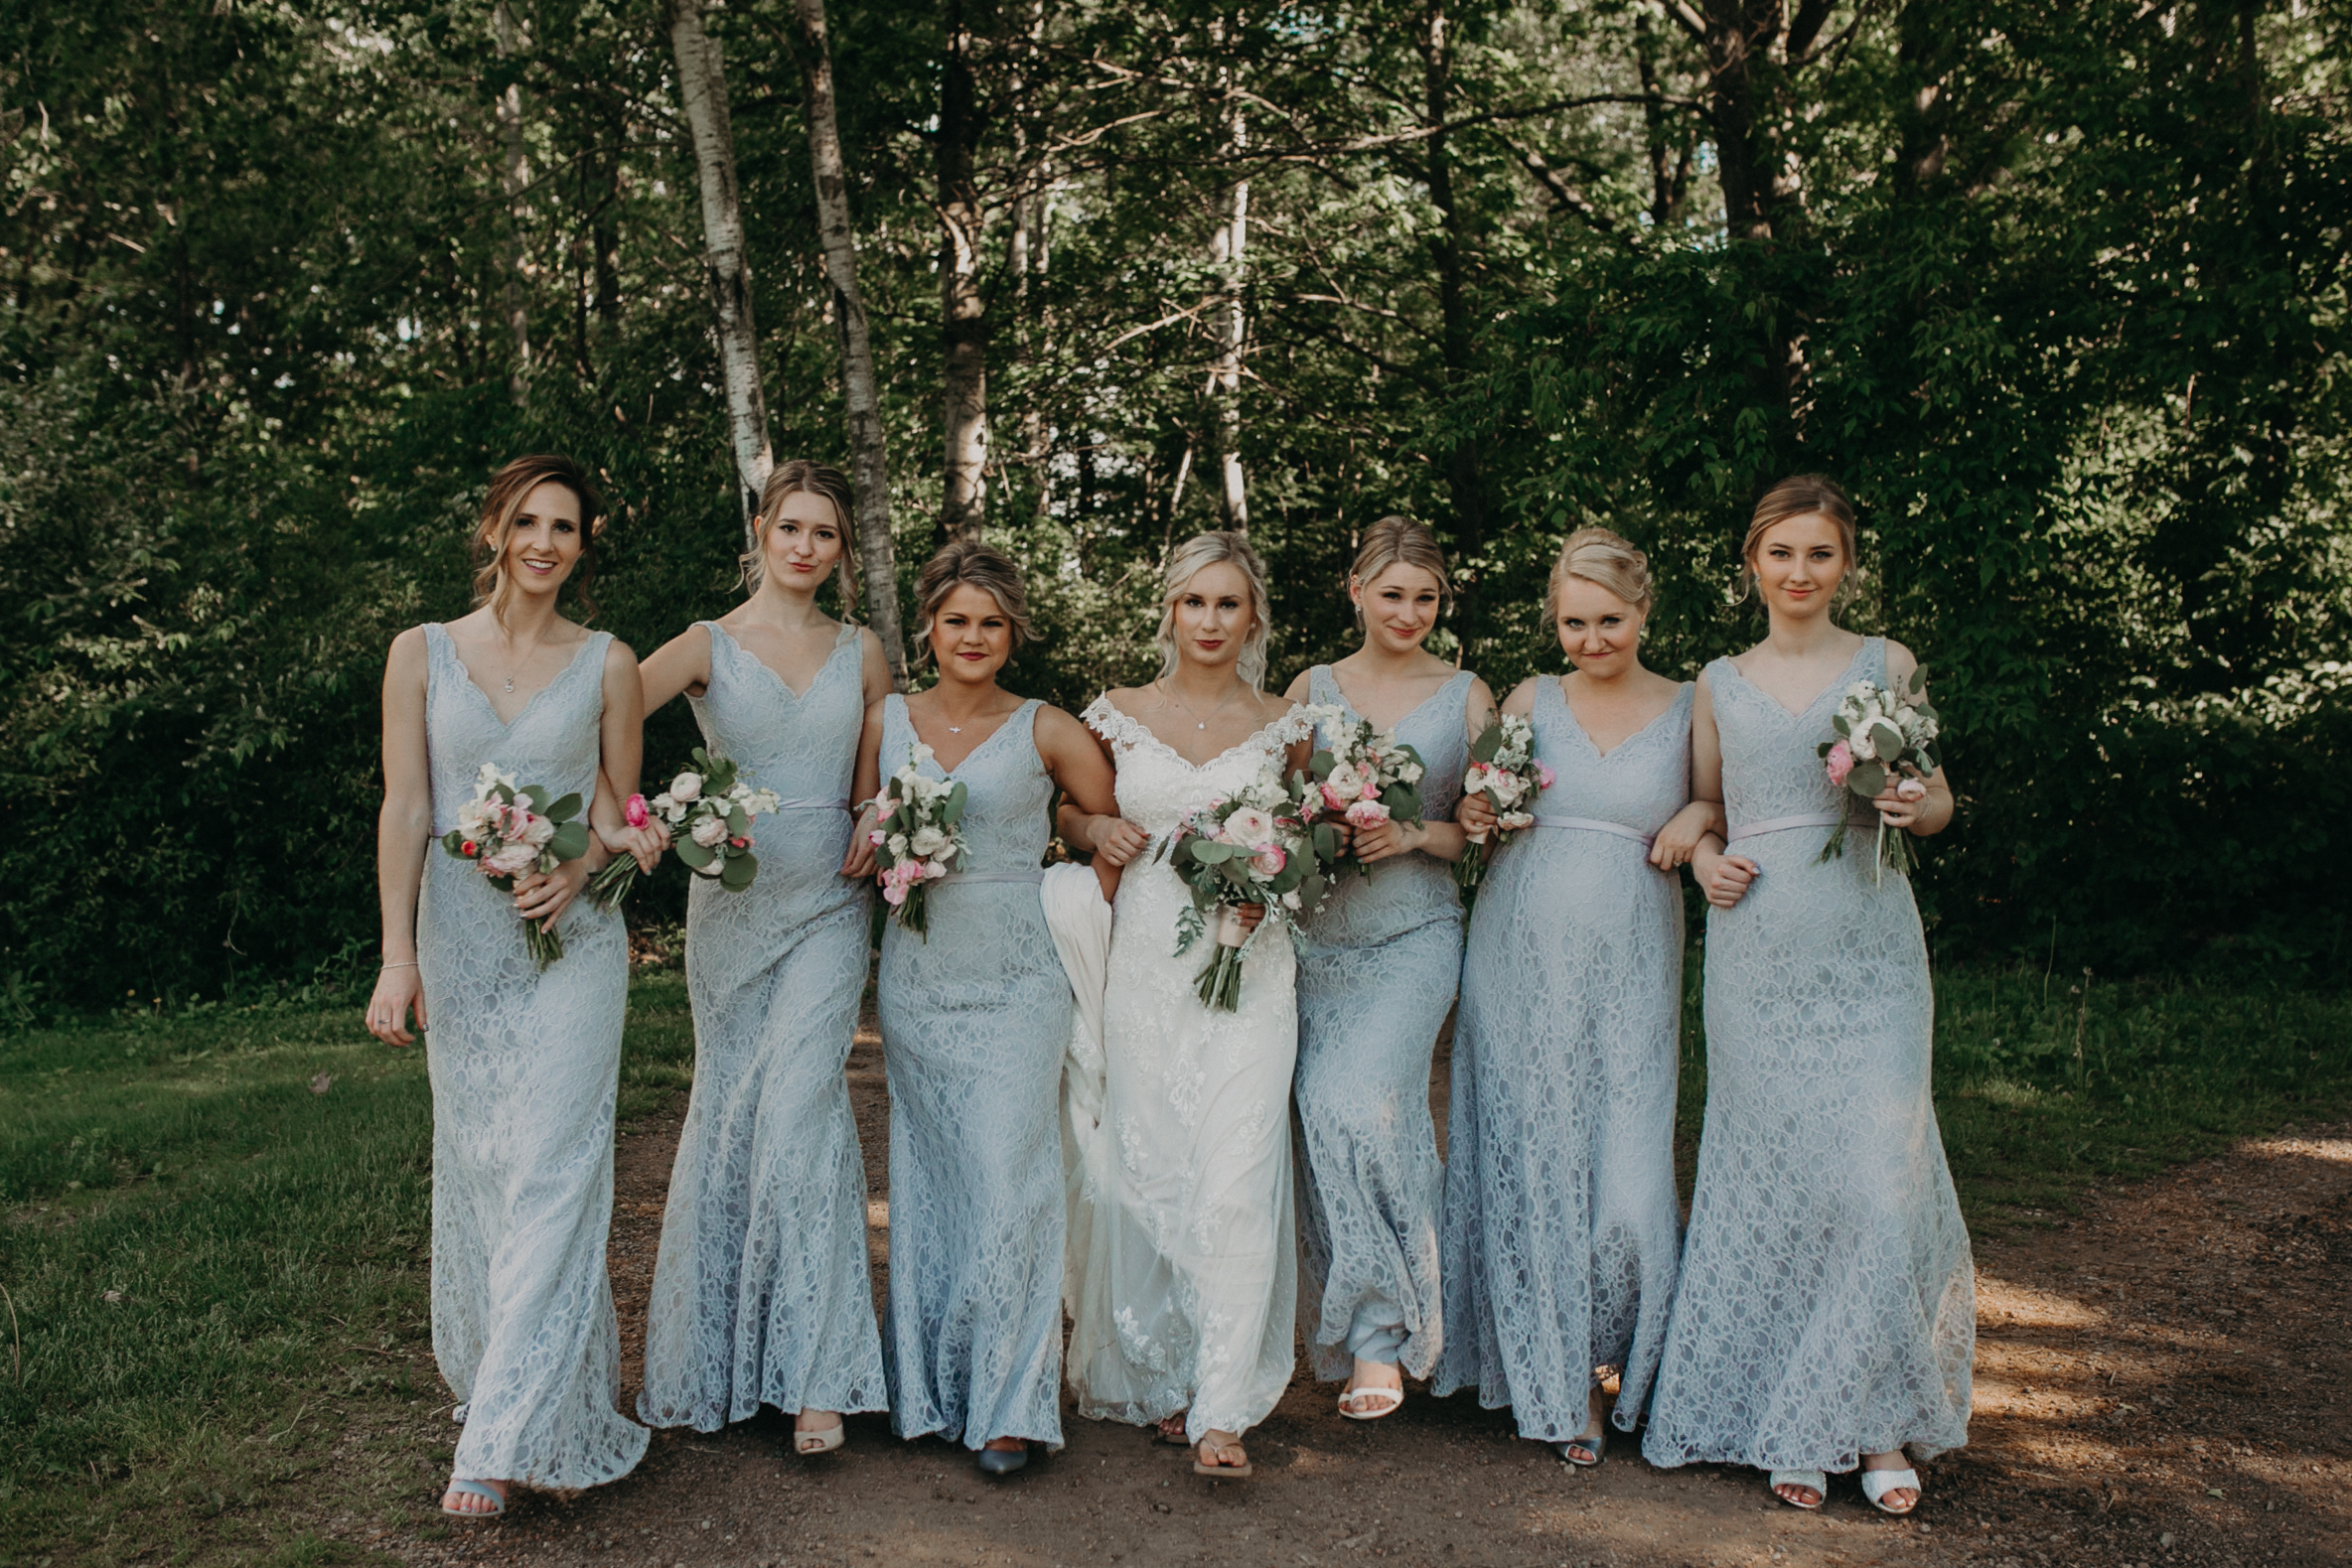 RiverEdge Golf Club wedding with beautiful girl gang in the wedding party